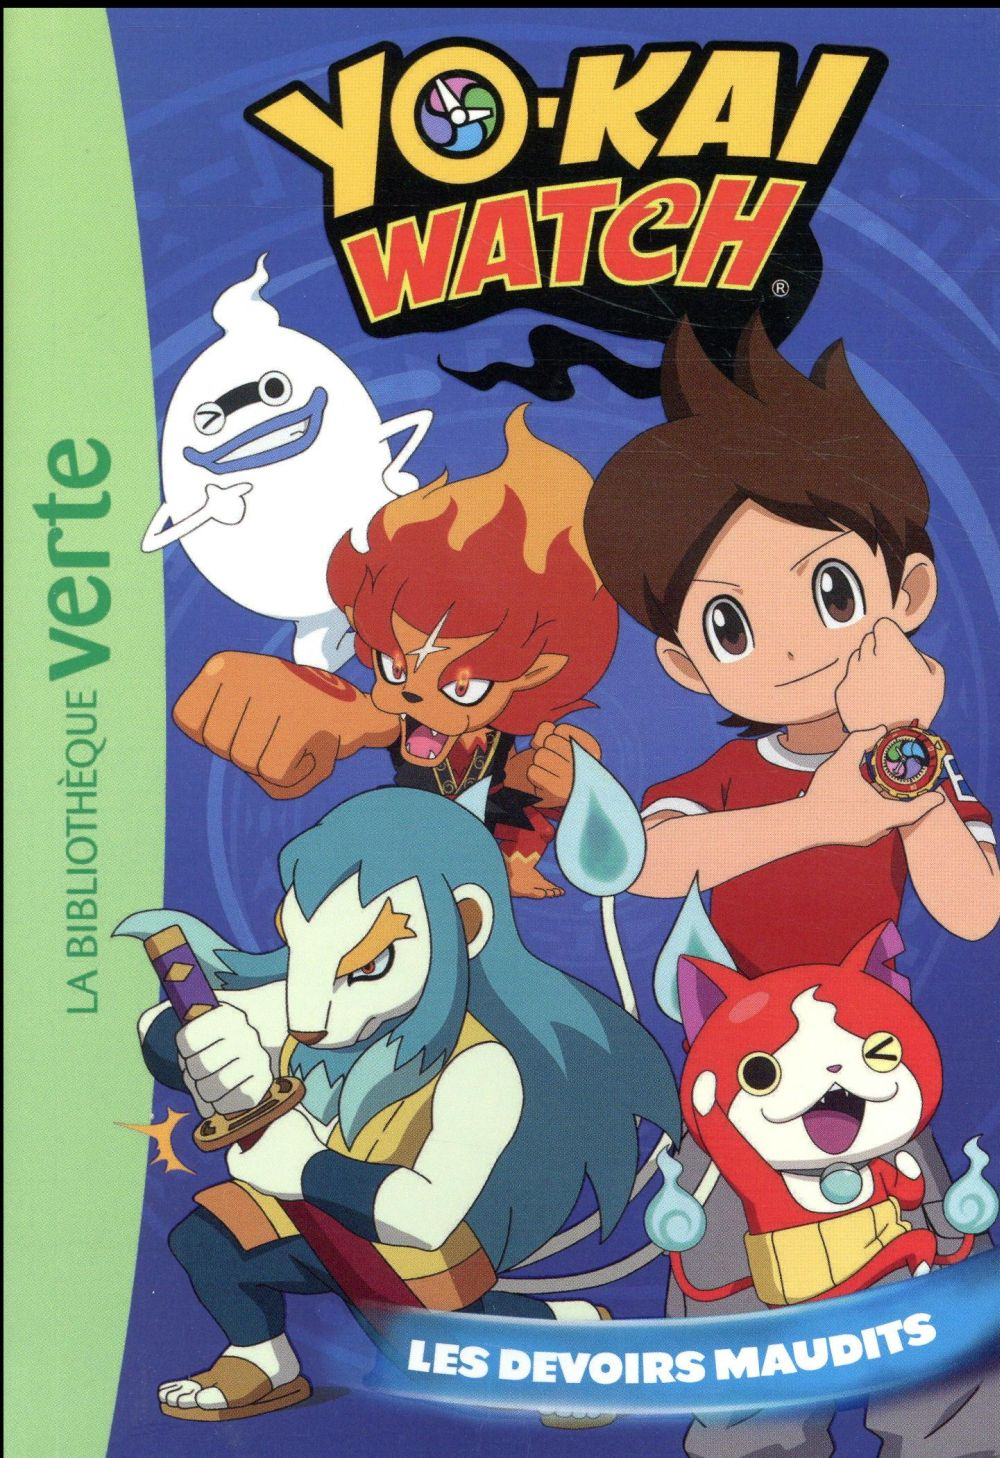 Yo-kai watch Les devoirs maudits Vol.10 Viz Media Hachette Jeunesse